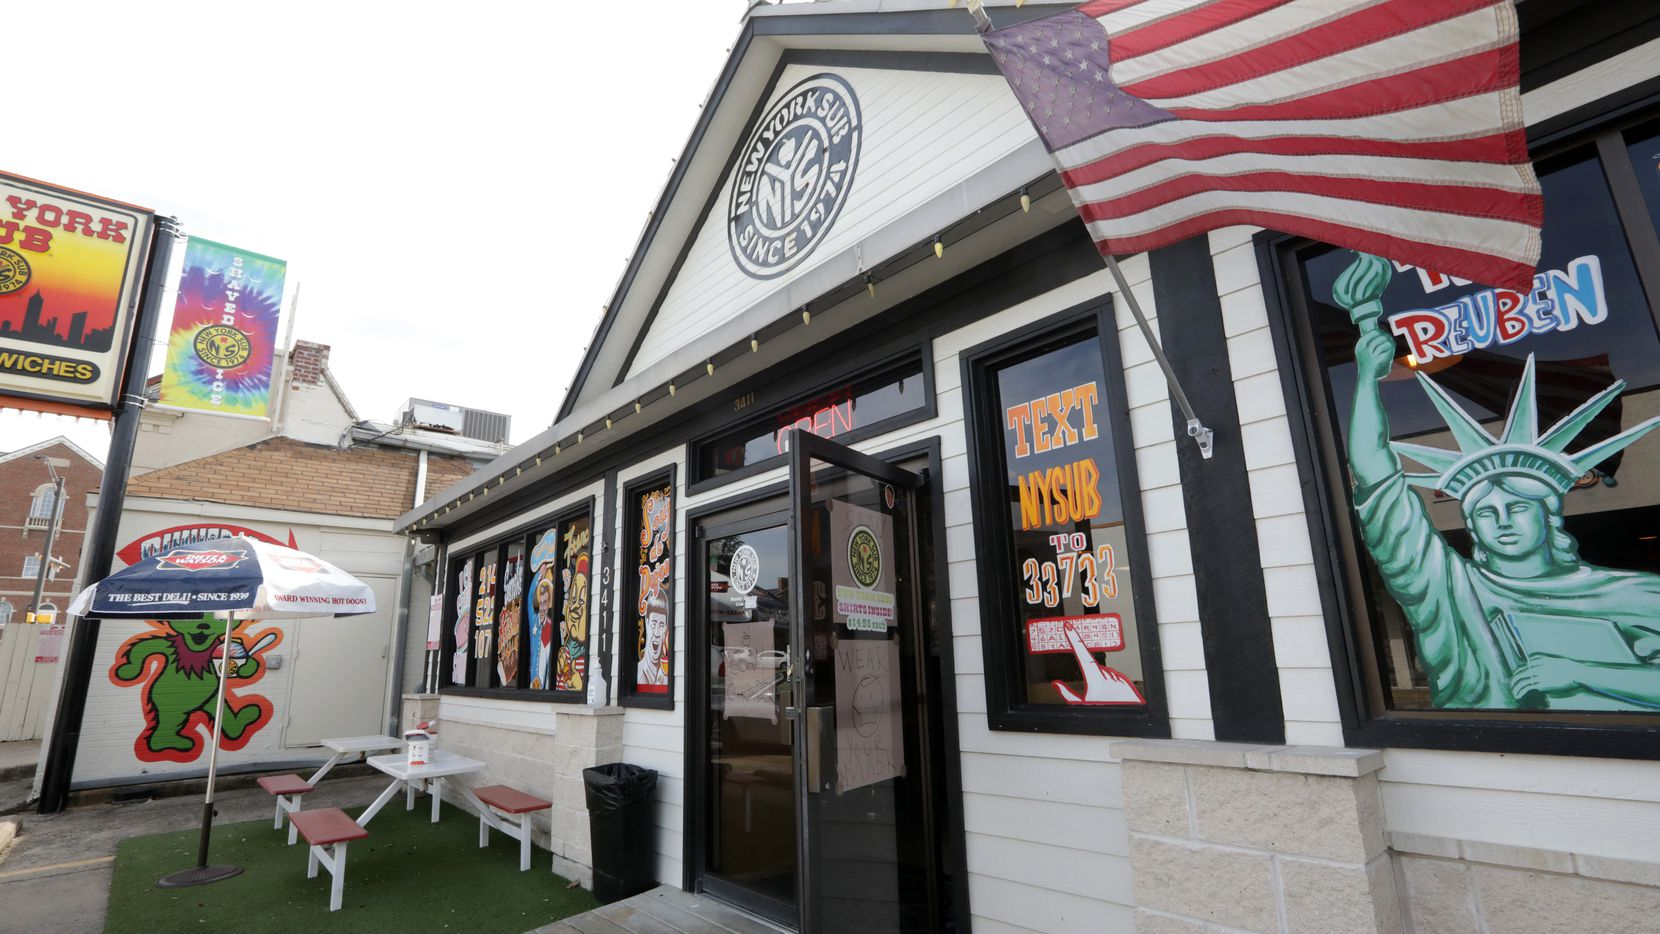 The exterior of New York Sub in Dallas features the Asbury Bear on the far left.